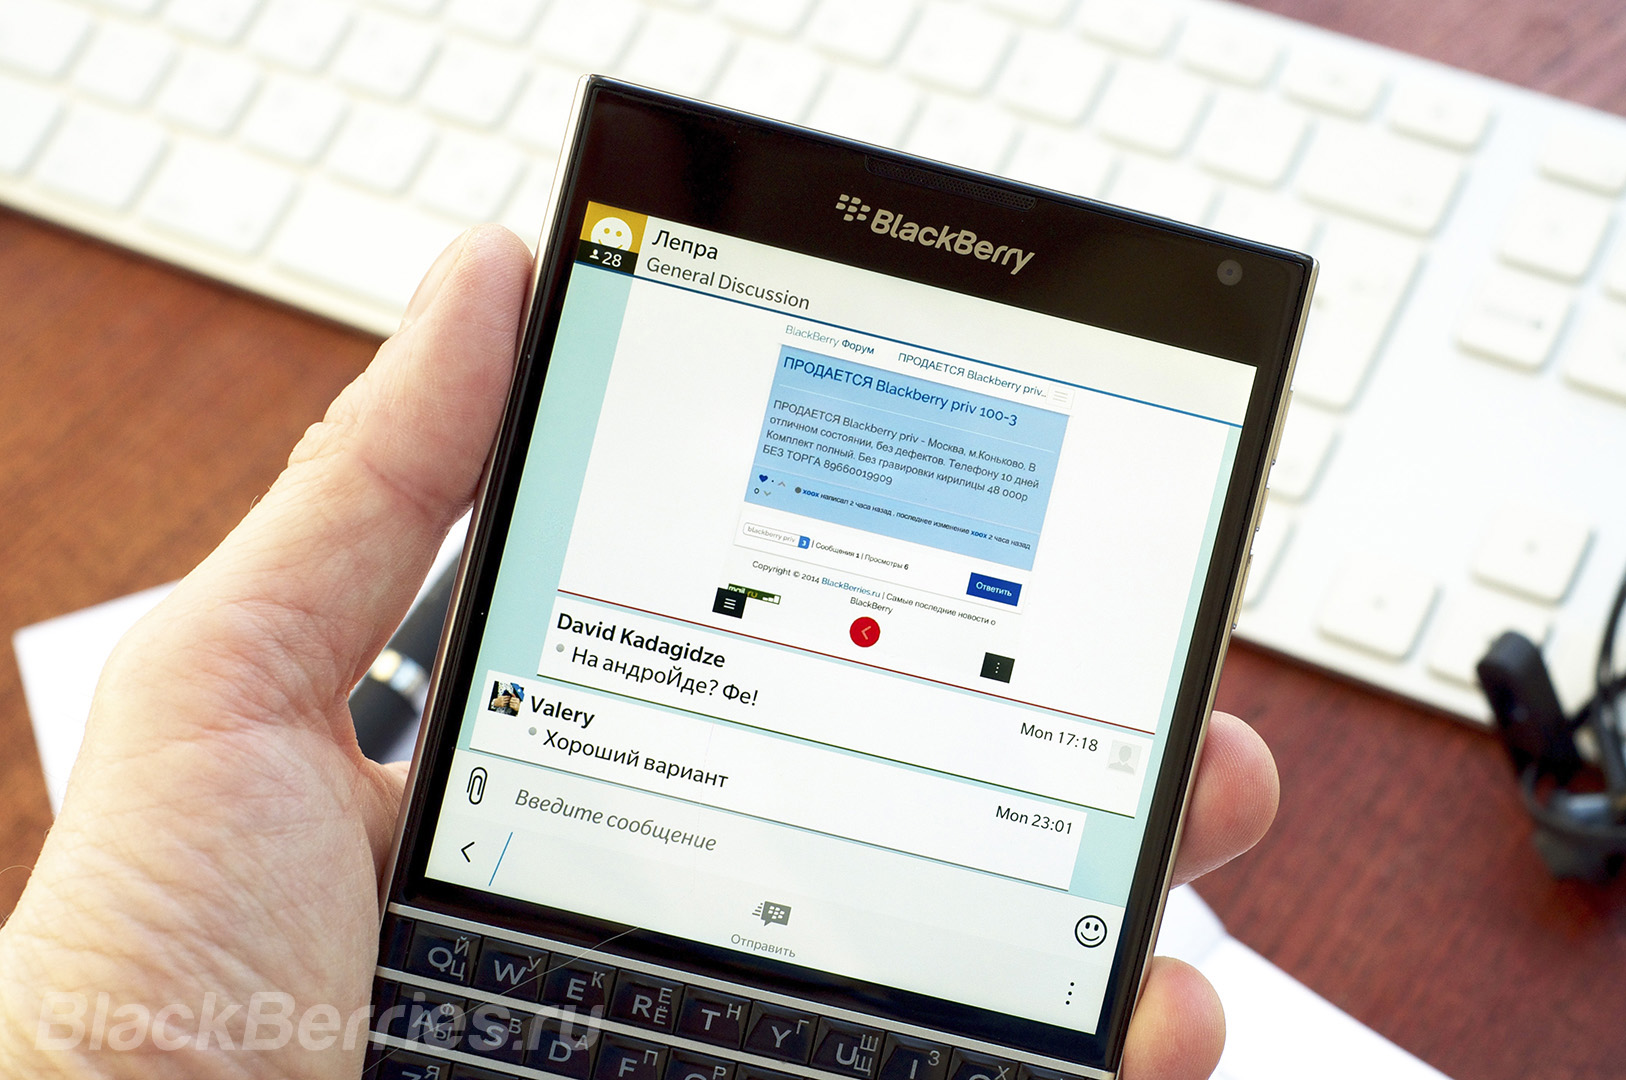 BlackBerry-Passport-Review-2016-04